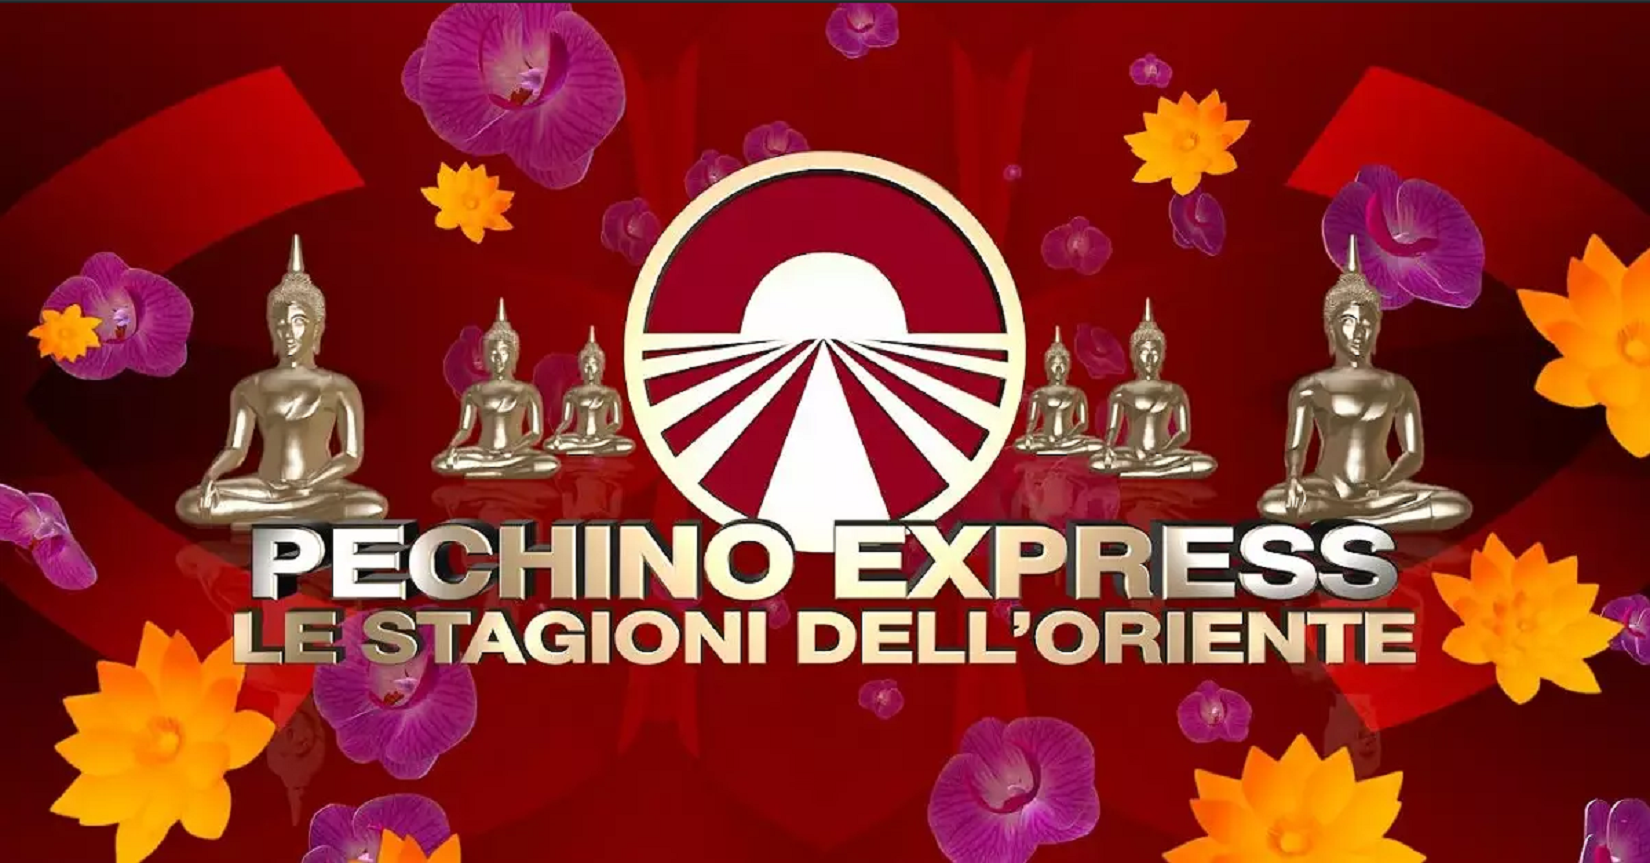 pechino express le stagioni dell'oriente